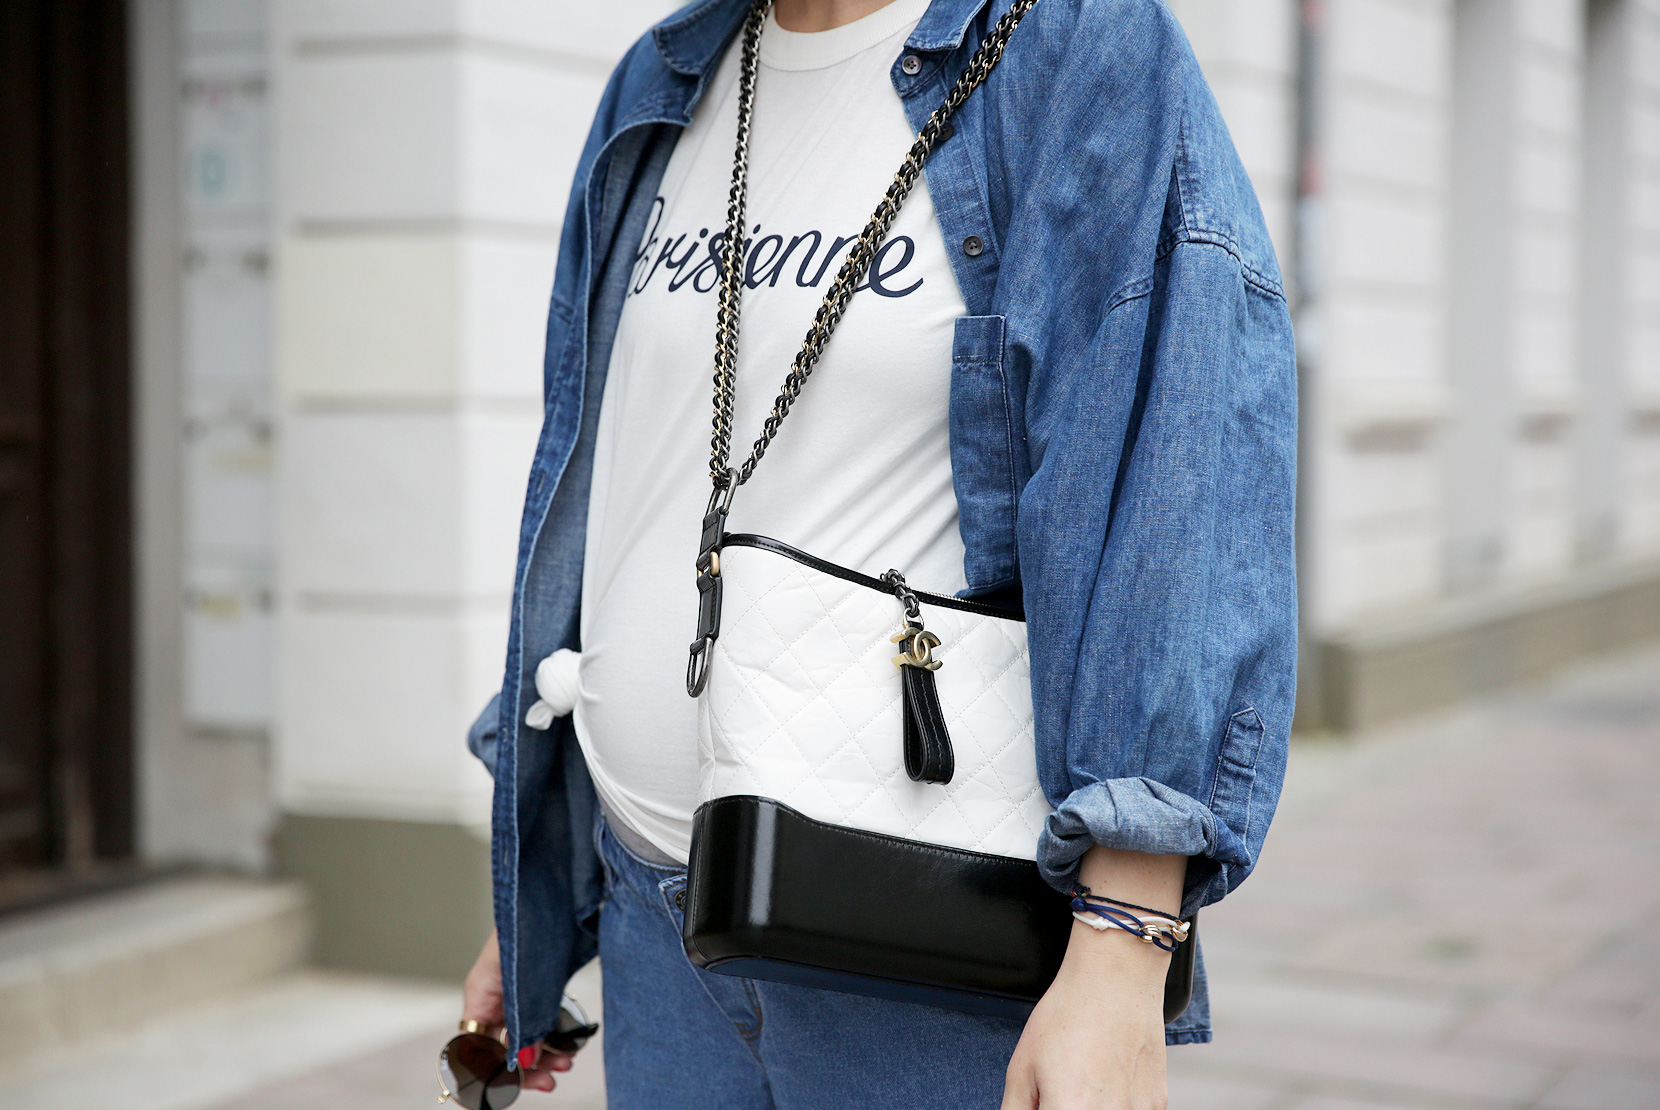 Fashion Mein Belly Und Die Gabrielle Bag Von Chanel Kate